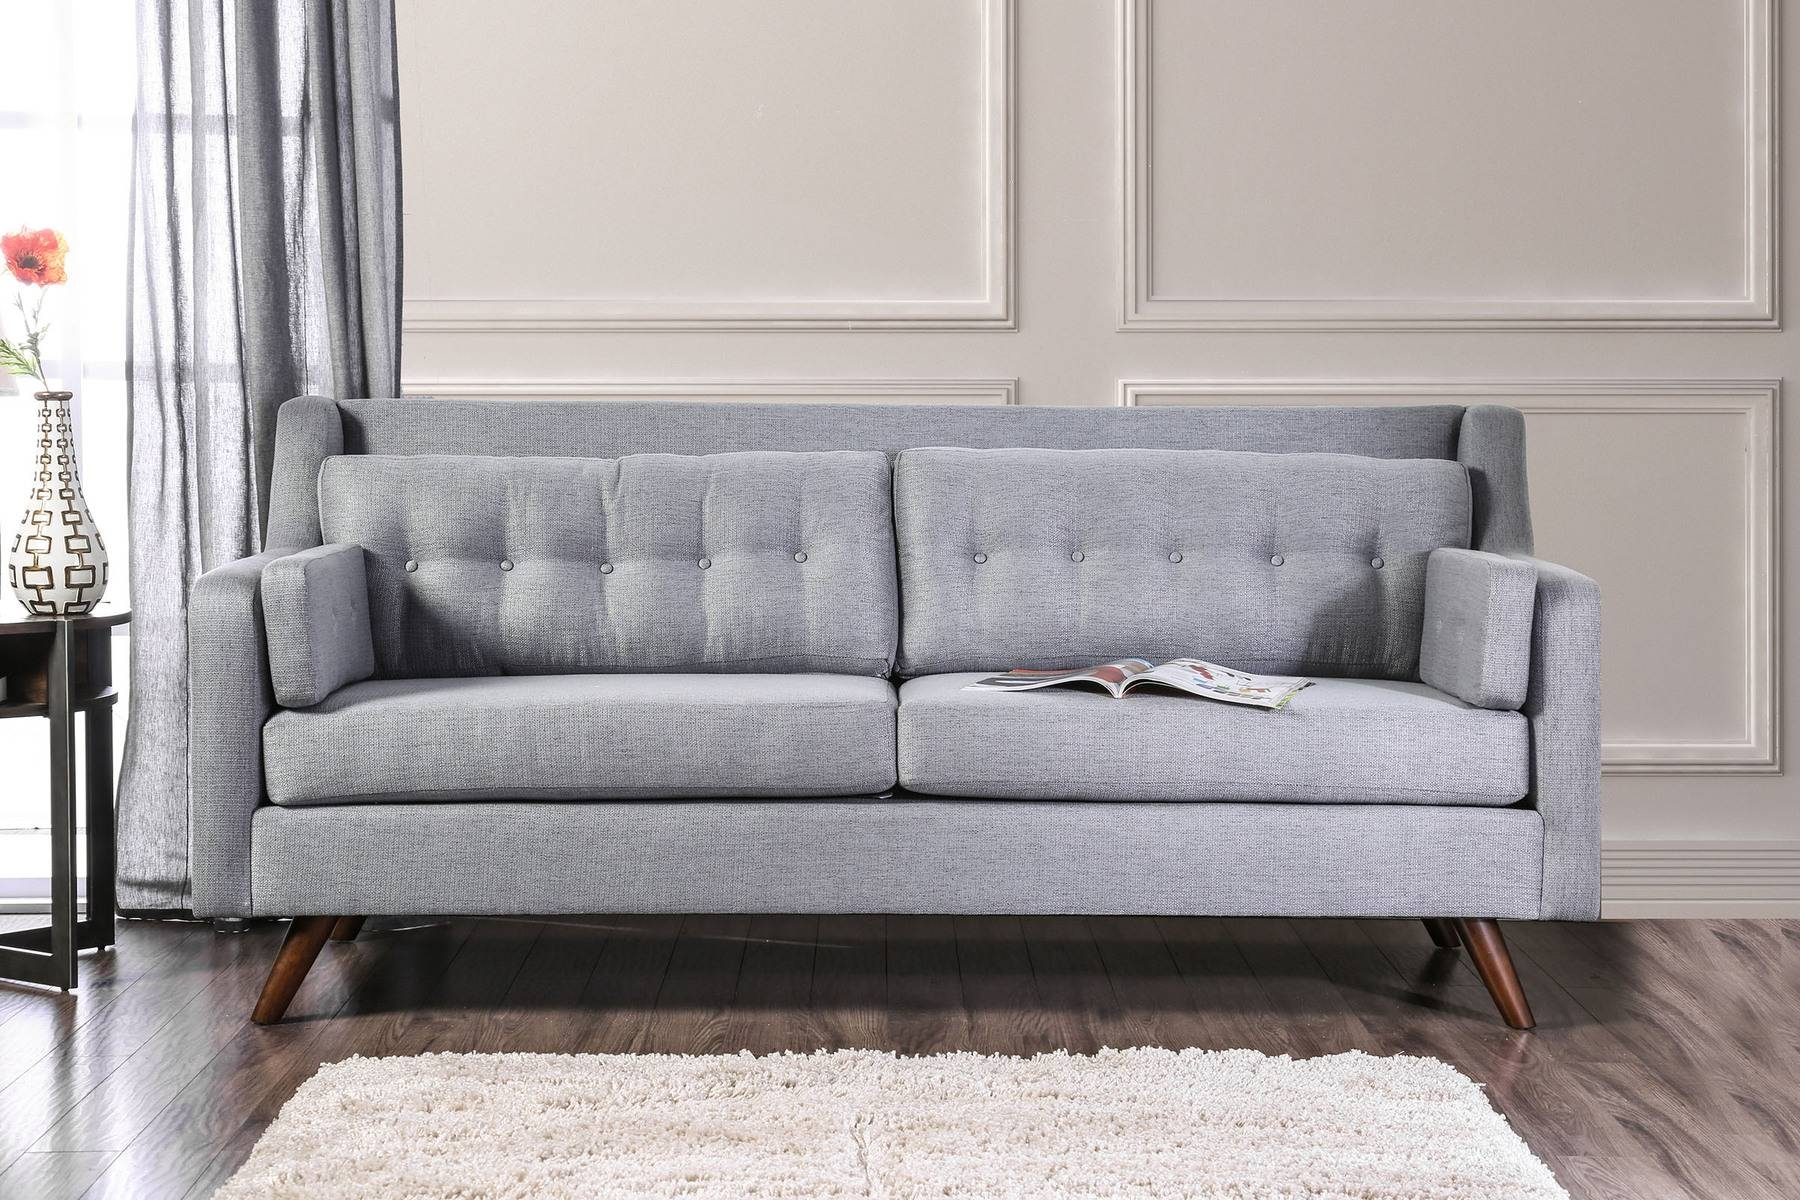 Hallie Gray Sofa Sm8821-Sf Furniture Of America Fabric Sofas At throughout Gray Sofas (Image 14 of 15)